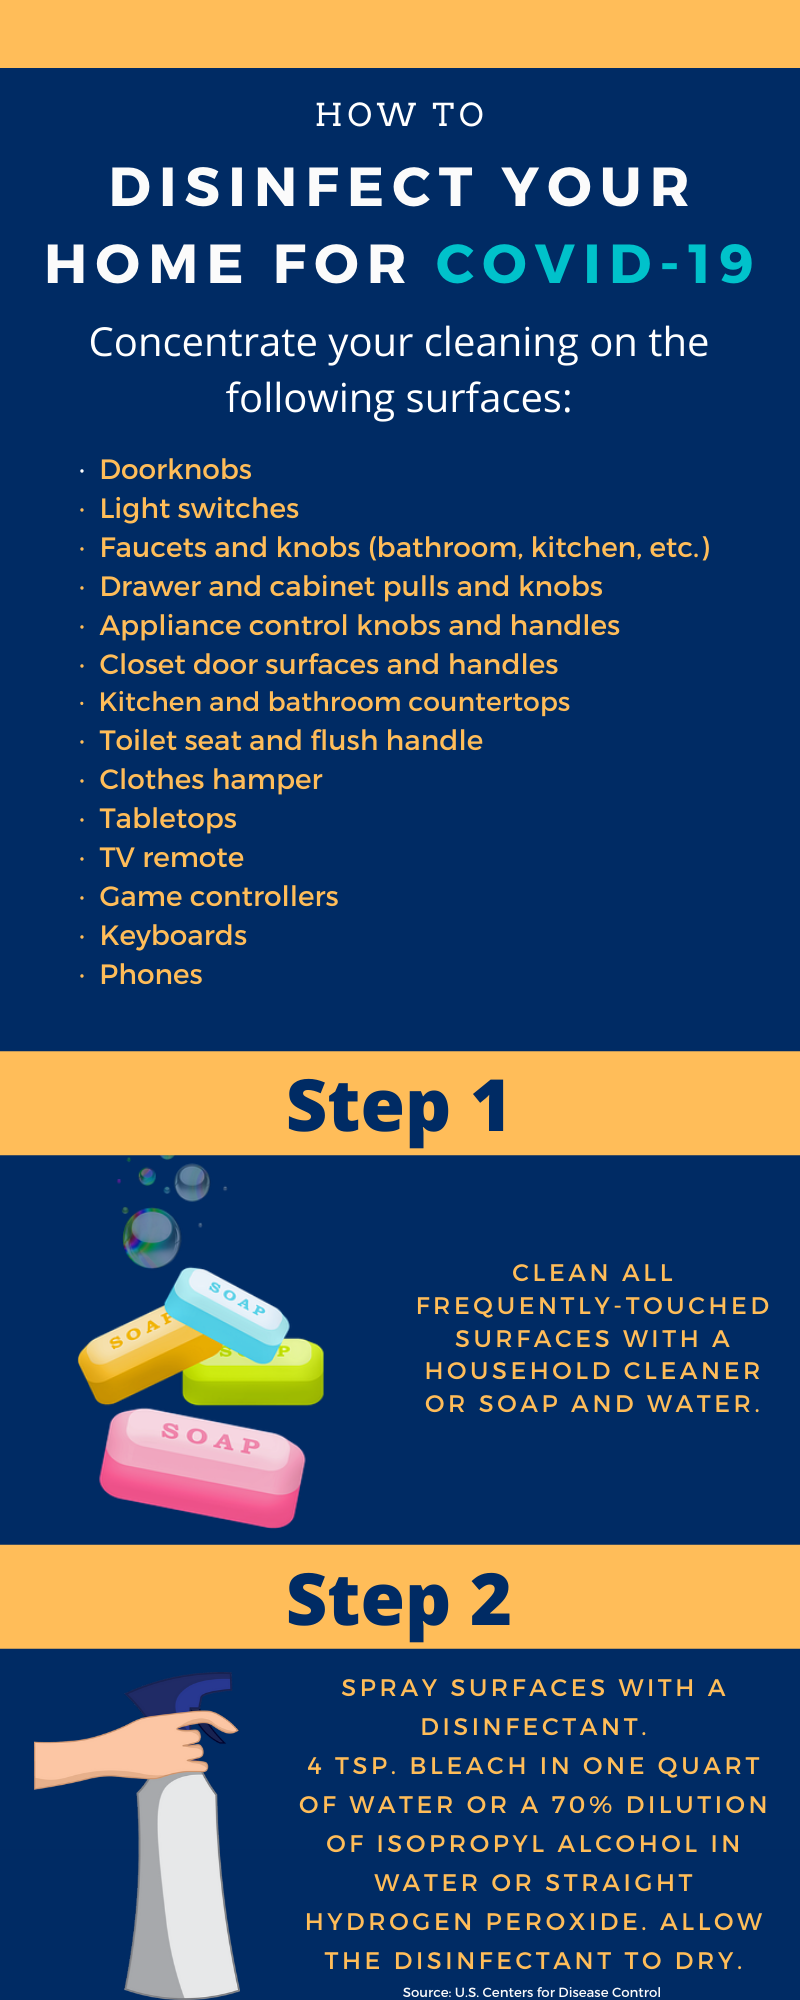 How to disinfect your home for coronavirus